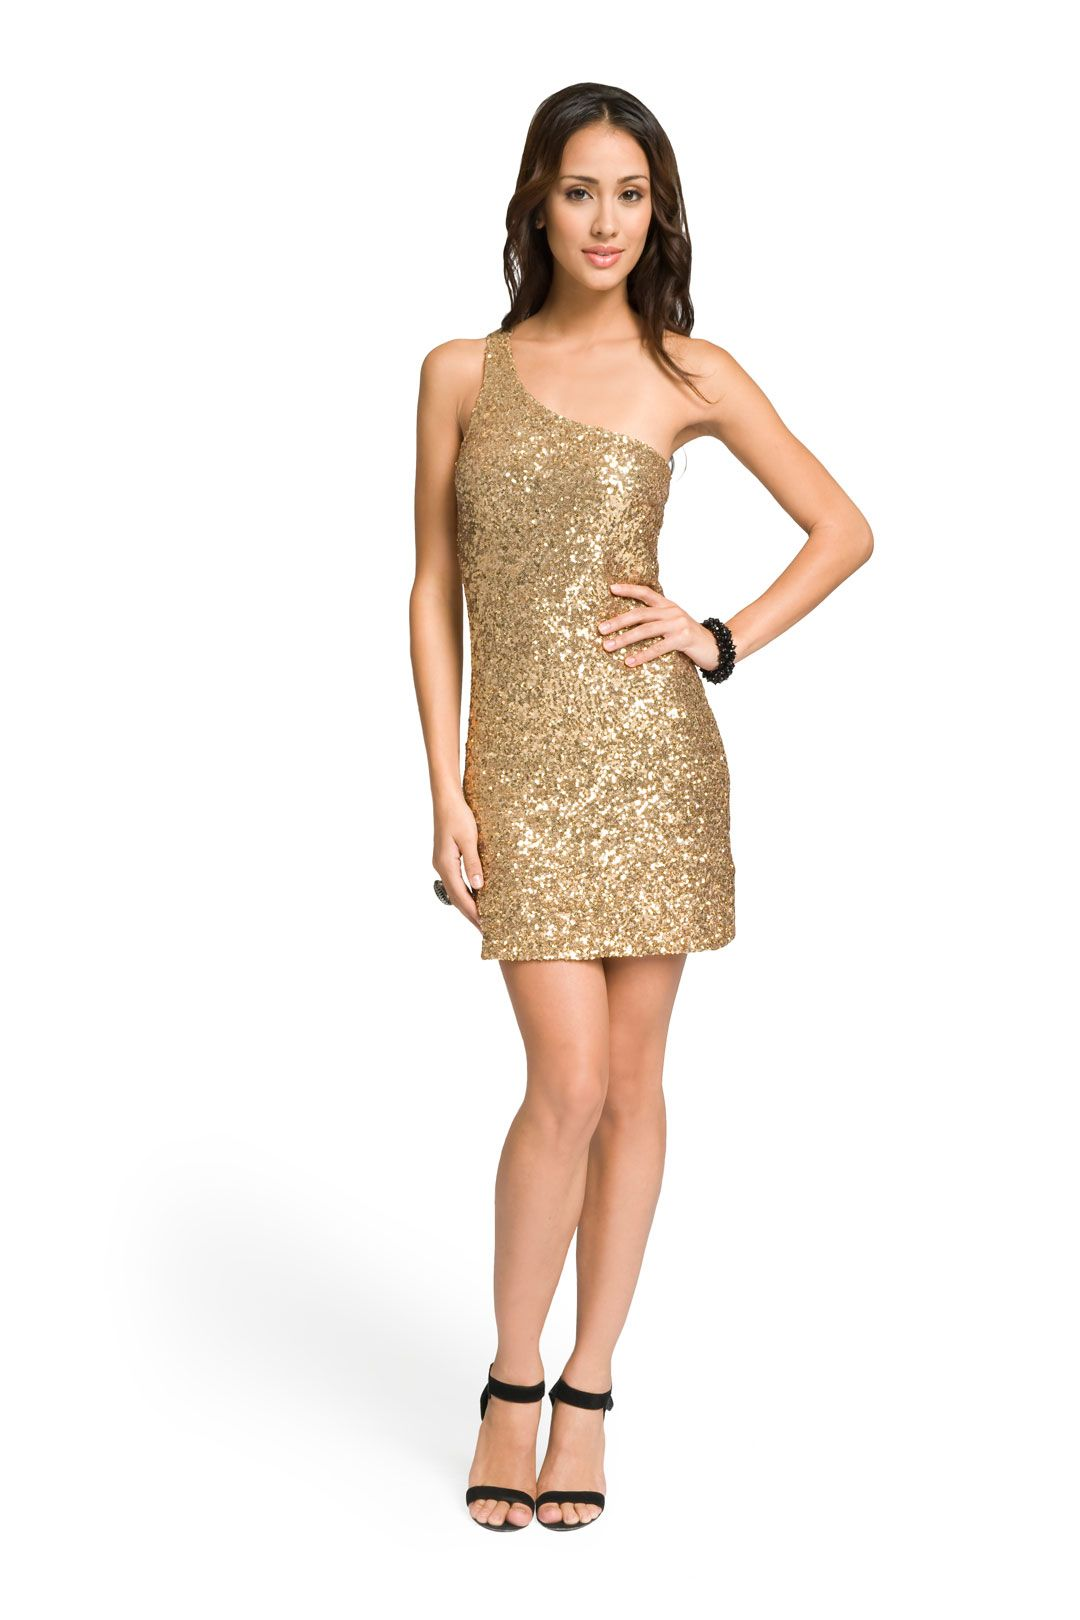 Gold One Shoulder Sequin Dress | Olivia d'abo, The o'jays and Rent ...